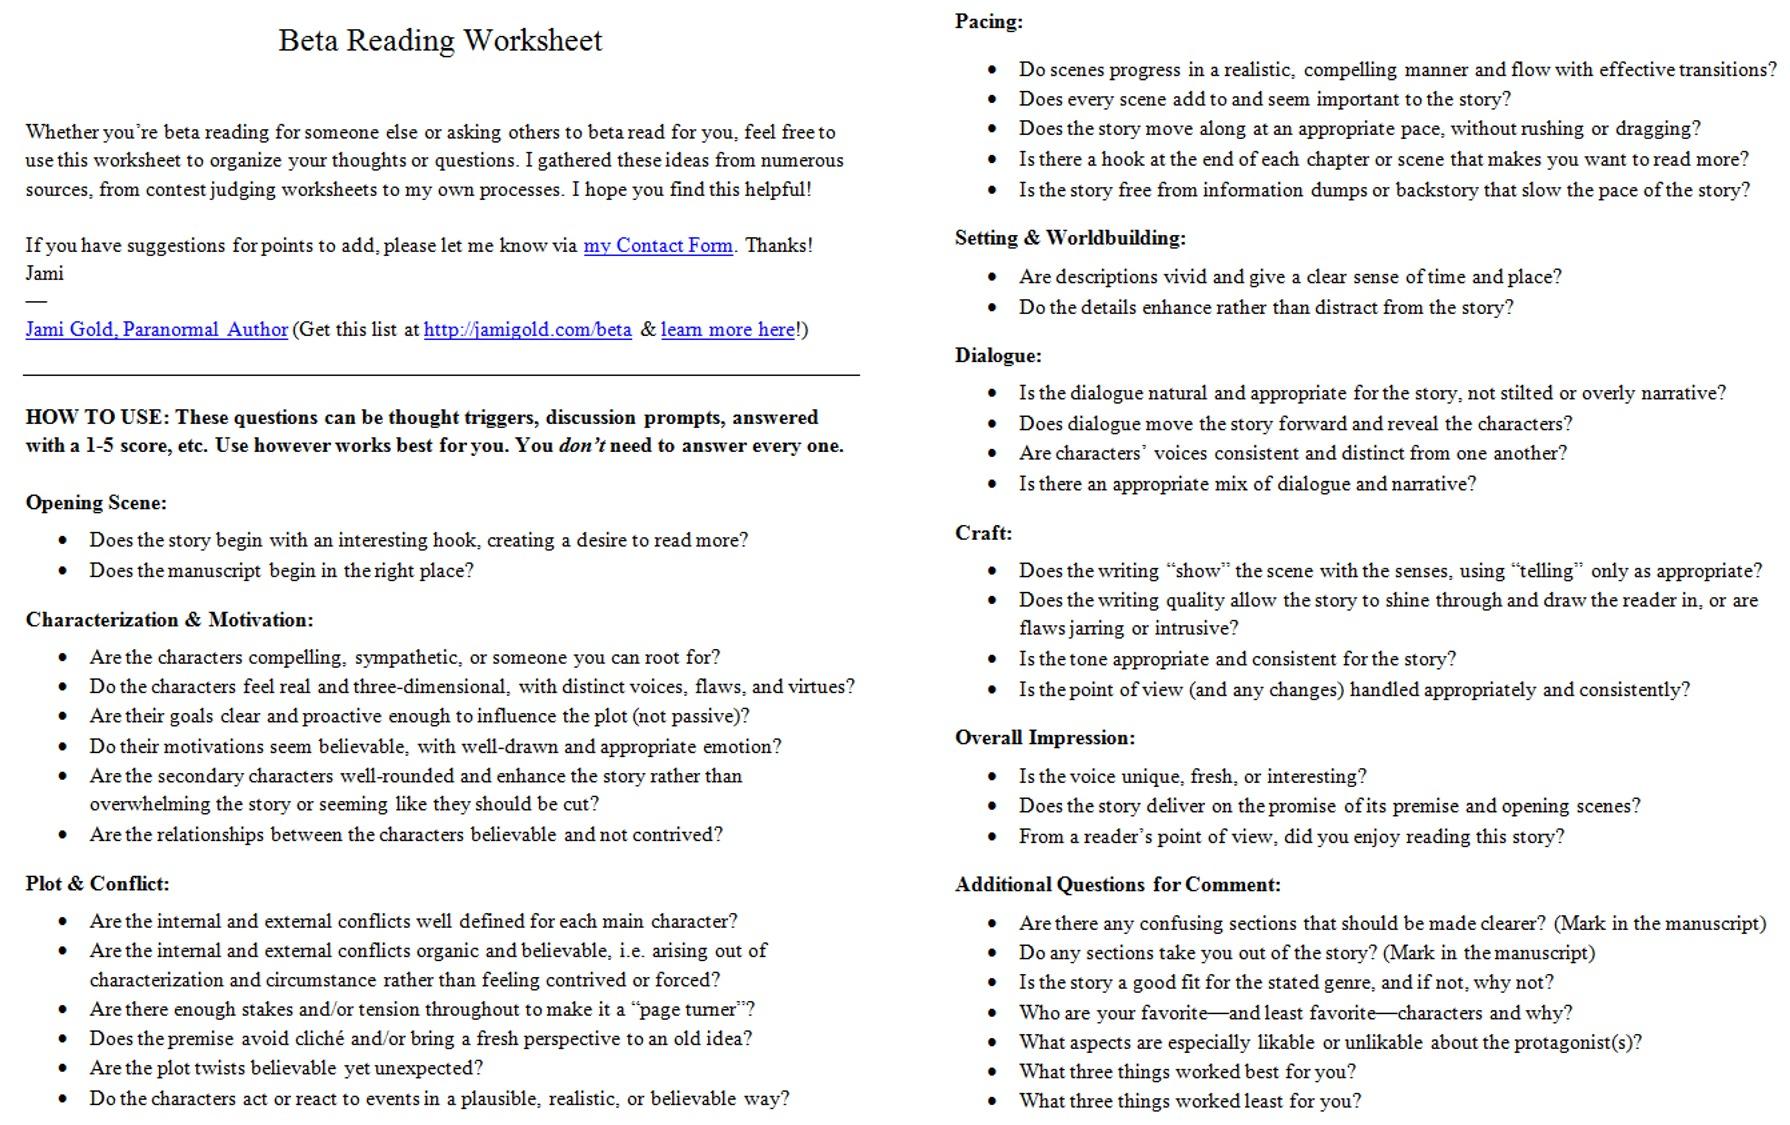 Proatmealus  Sweet Worksheets For Writers  Jami Gold Paranormal Author With Hot Screen Shot Of The Twopage Beta Reading Worksheet With Agreeable Worksheet On Prepositions For Grade  Also Grouped Frequency Table Worksheet In Addition Time Distance Speed Worksheet And Worksheets Conjunctions As Well As Antonyms Worksheet For Grade  Additionally Year  Comprehension Worksheets From Jamigoldcom With Proatmealus  Hot Worksheets For Writers  Jami Gold Paranormal Author With Agreeable Screen Shot Of The Twopage Beta Reading Worksheet And Sweet Worksheet On Prepositions For Grade  Also Grouped Frequency Table Worksheet In Addition Time Distance Speed Worksheet From Jamigoldcom